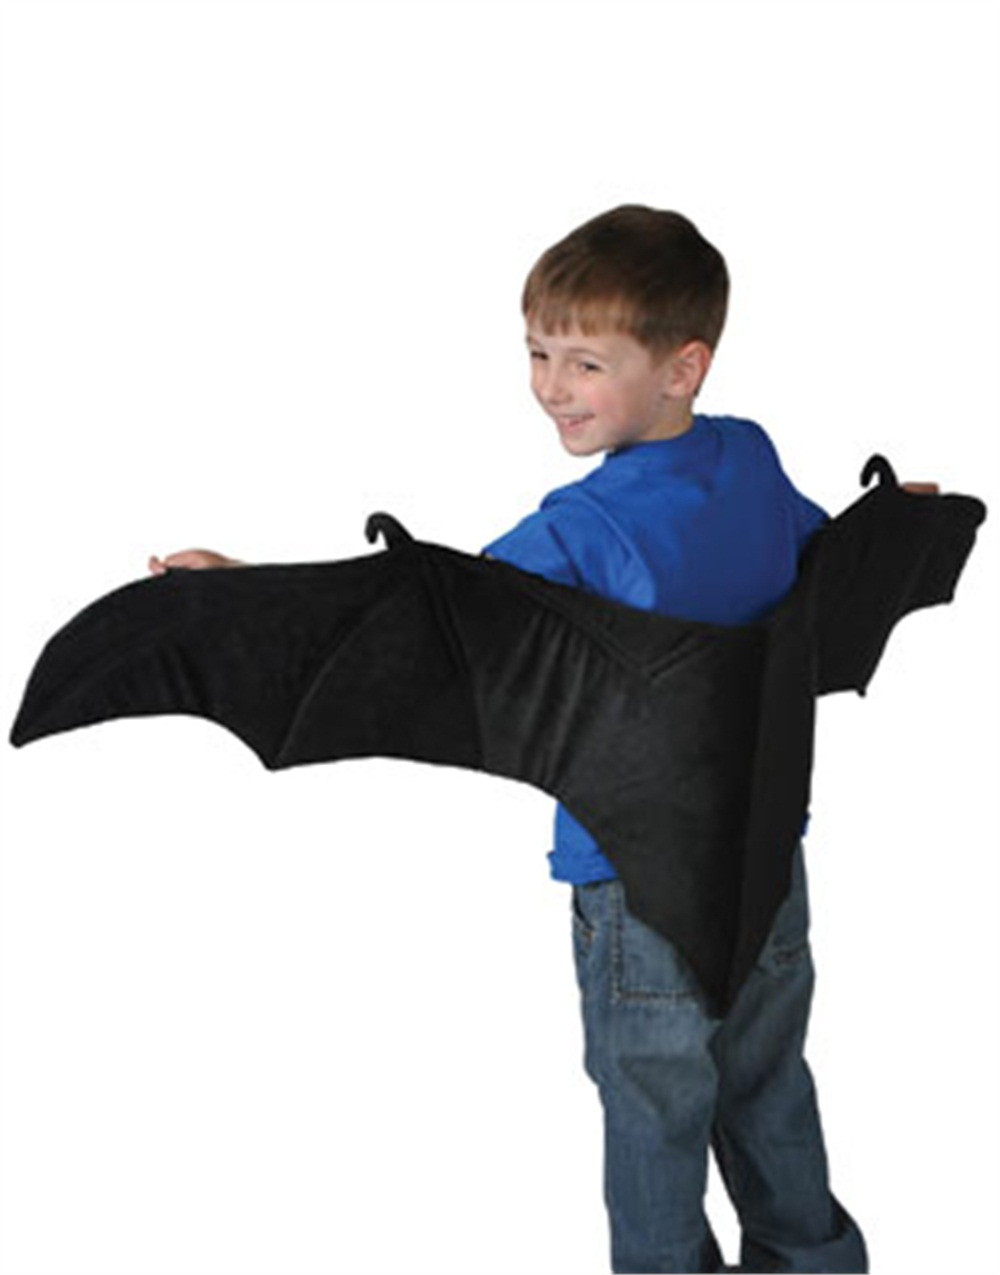 Bat wings costume accessories - photo#16